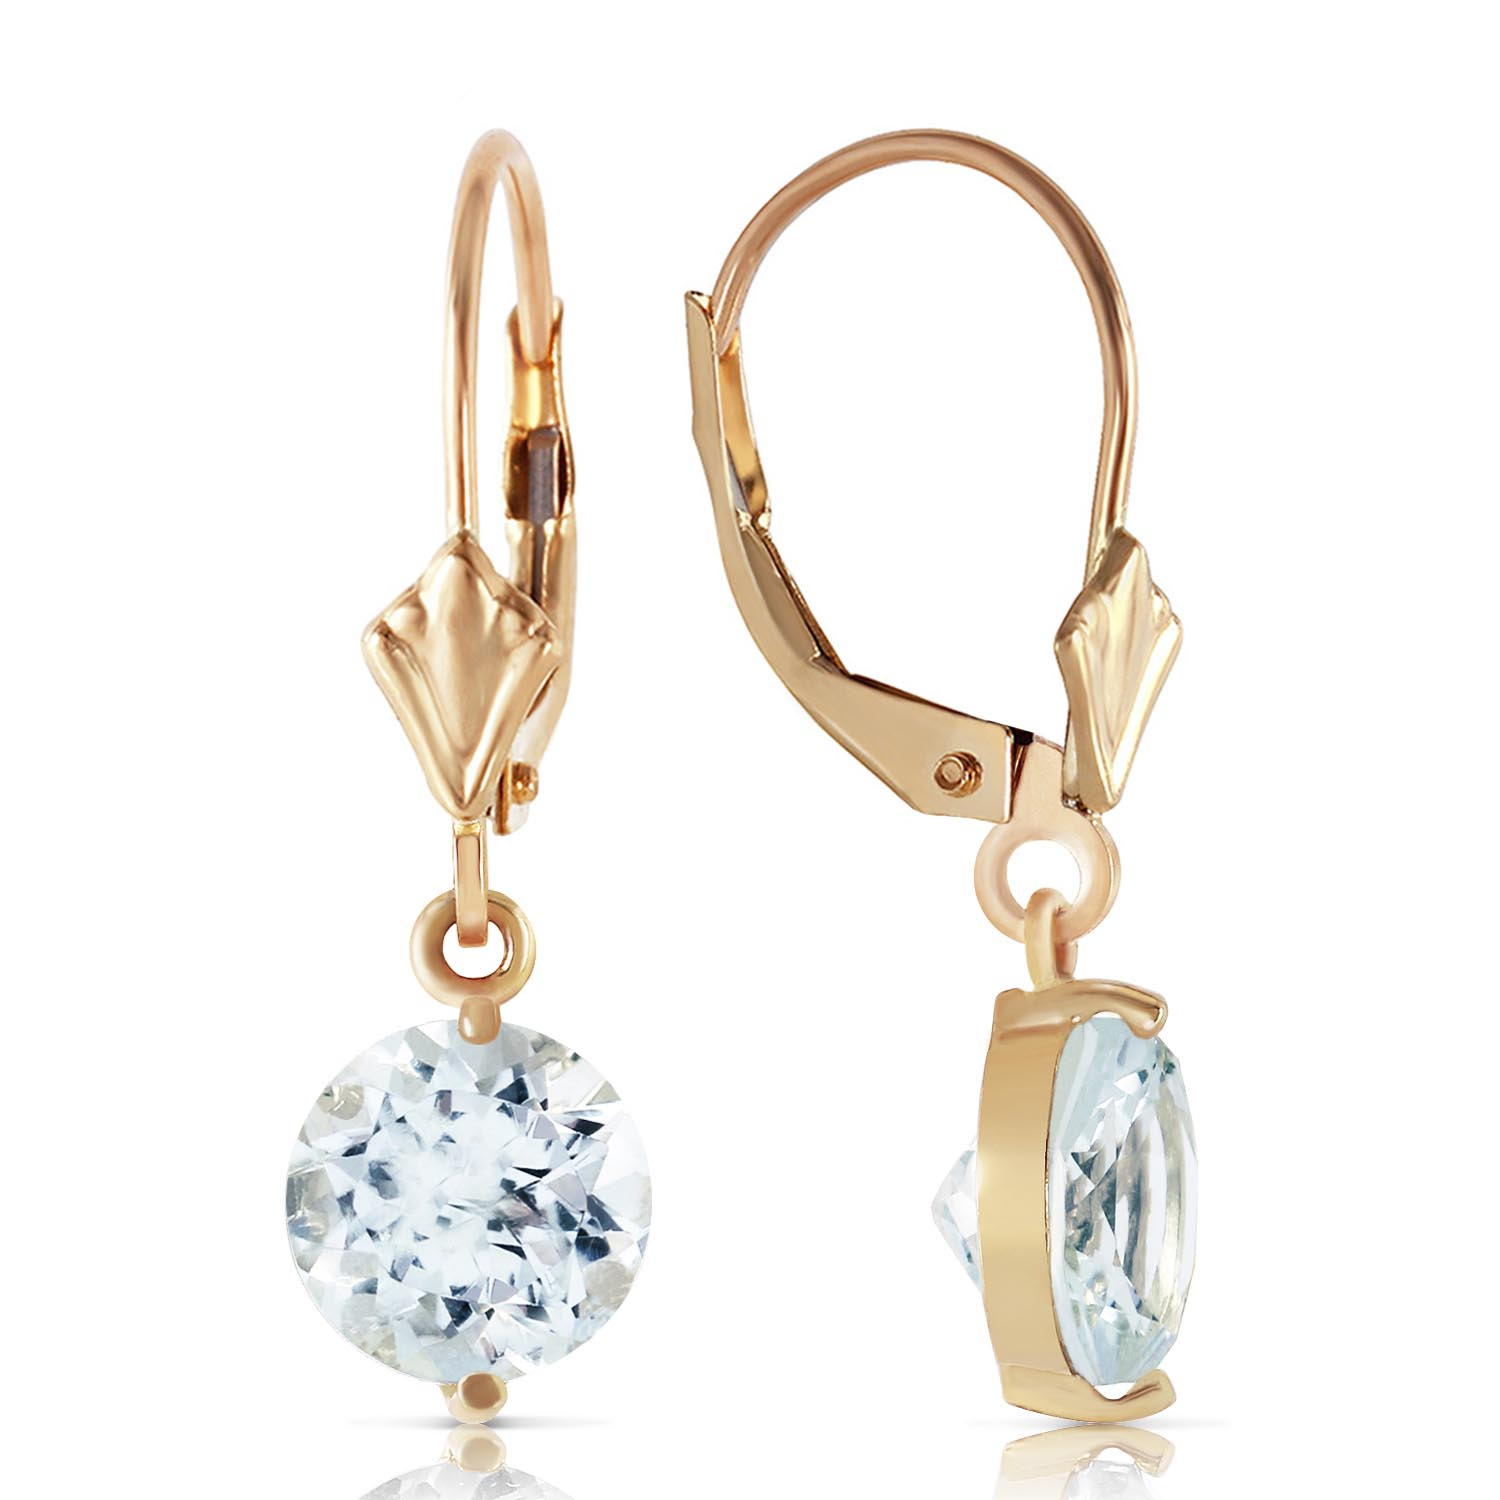 Aquamarine Drop Earrings 3.1ctw in 14K Gold